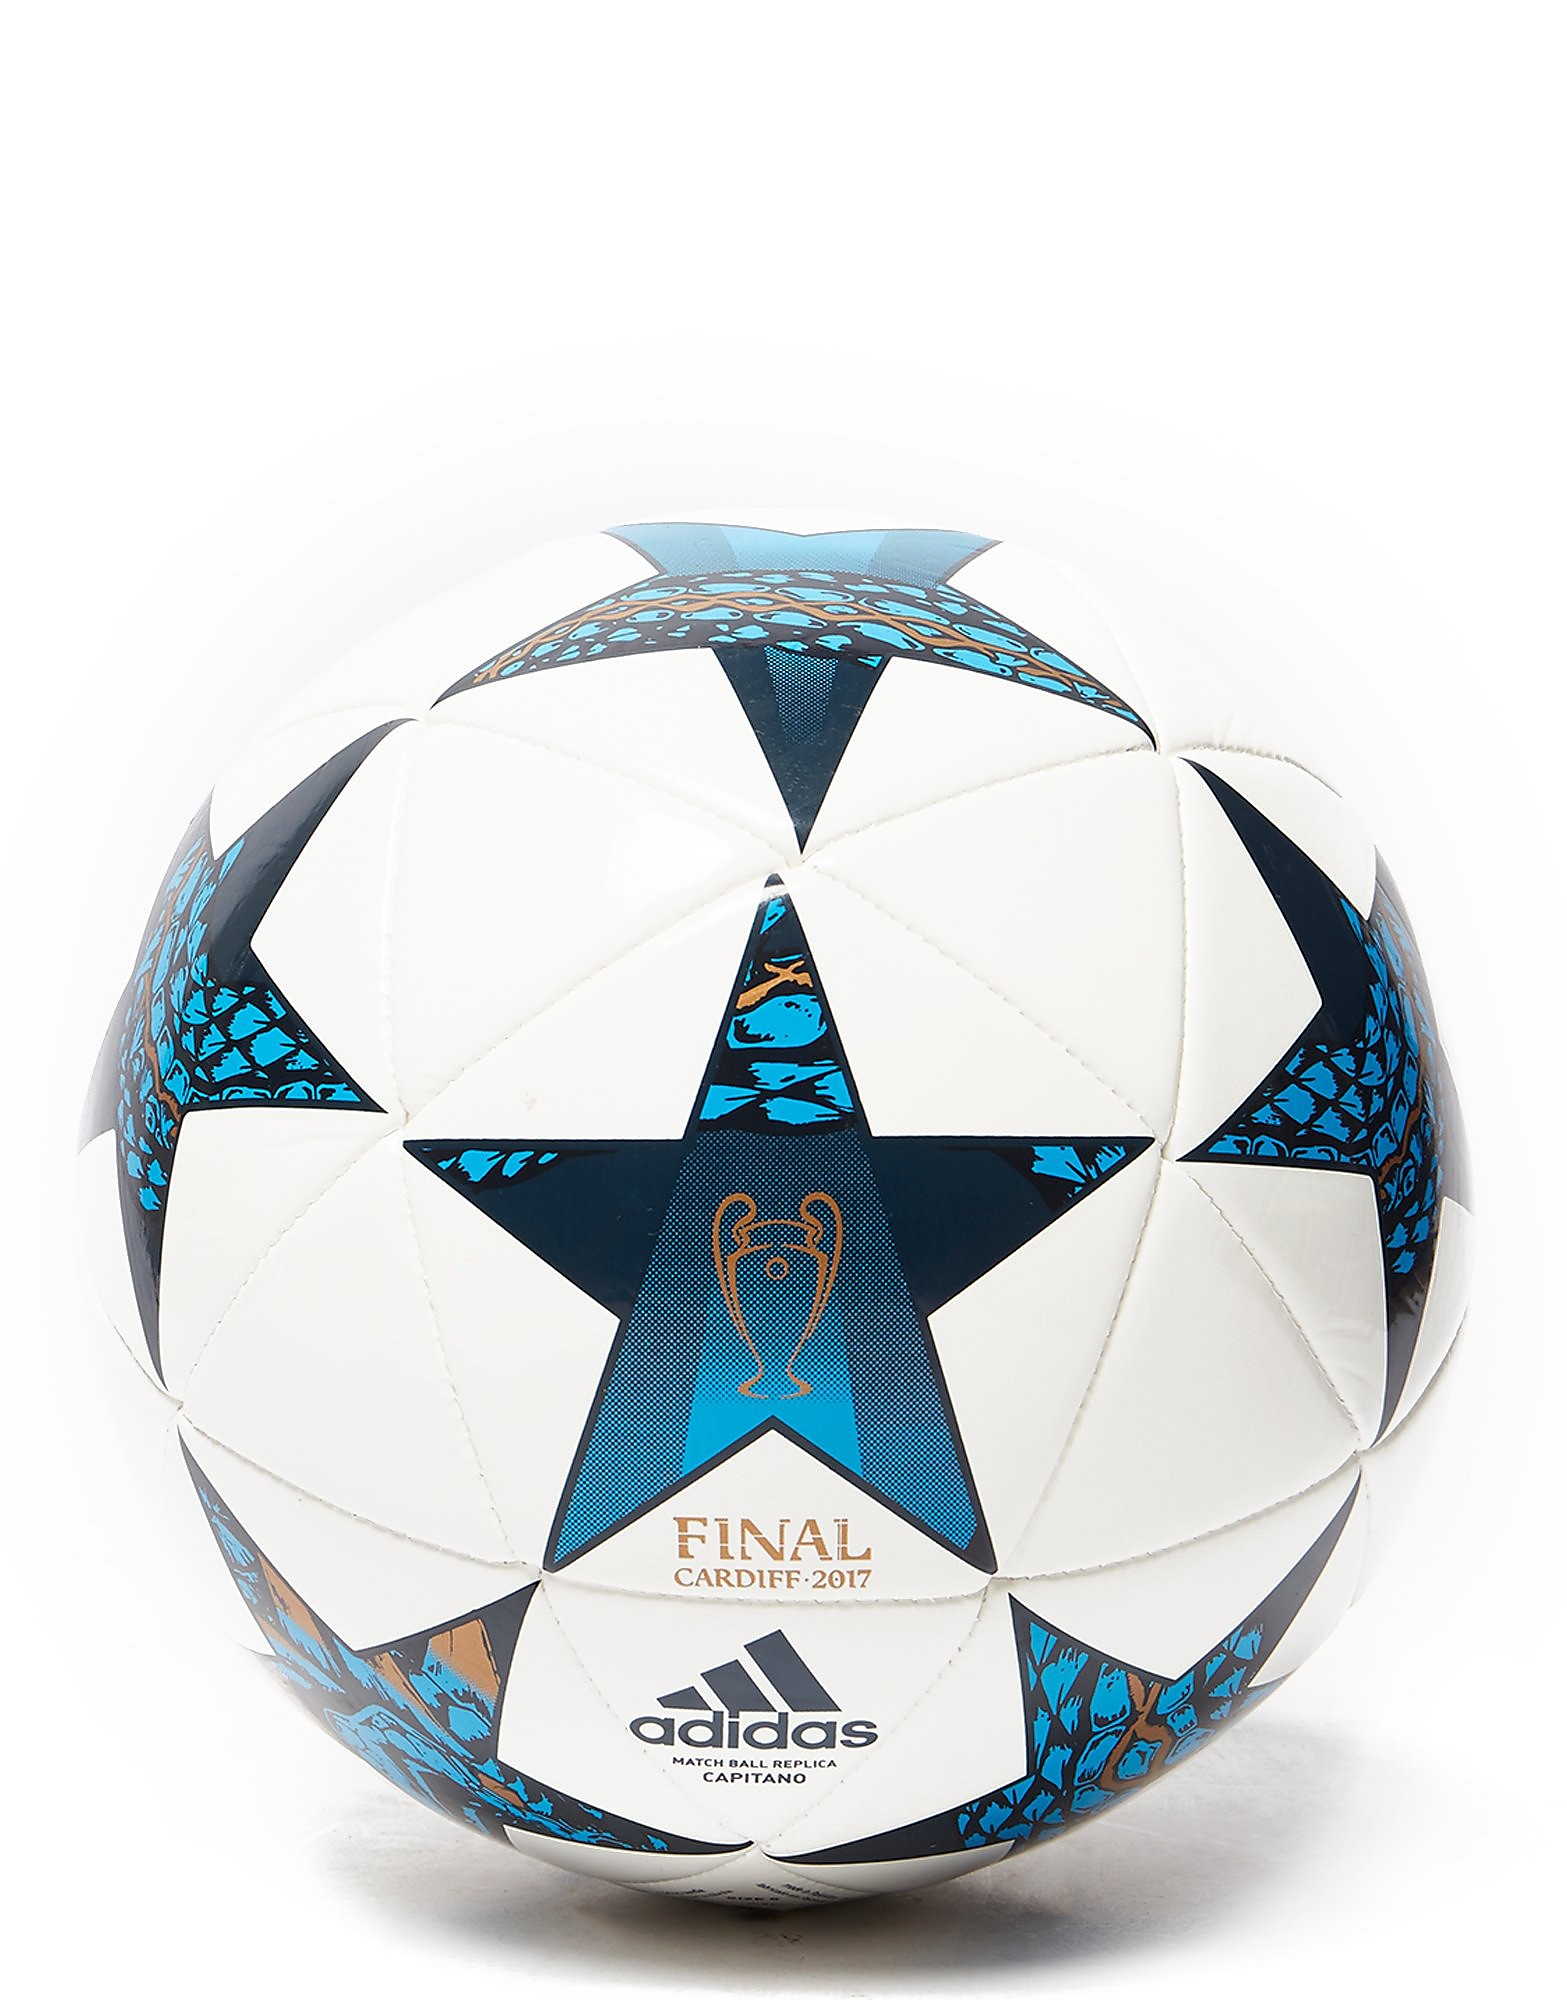 adidas Champions League Final 2017 Football